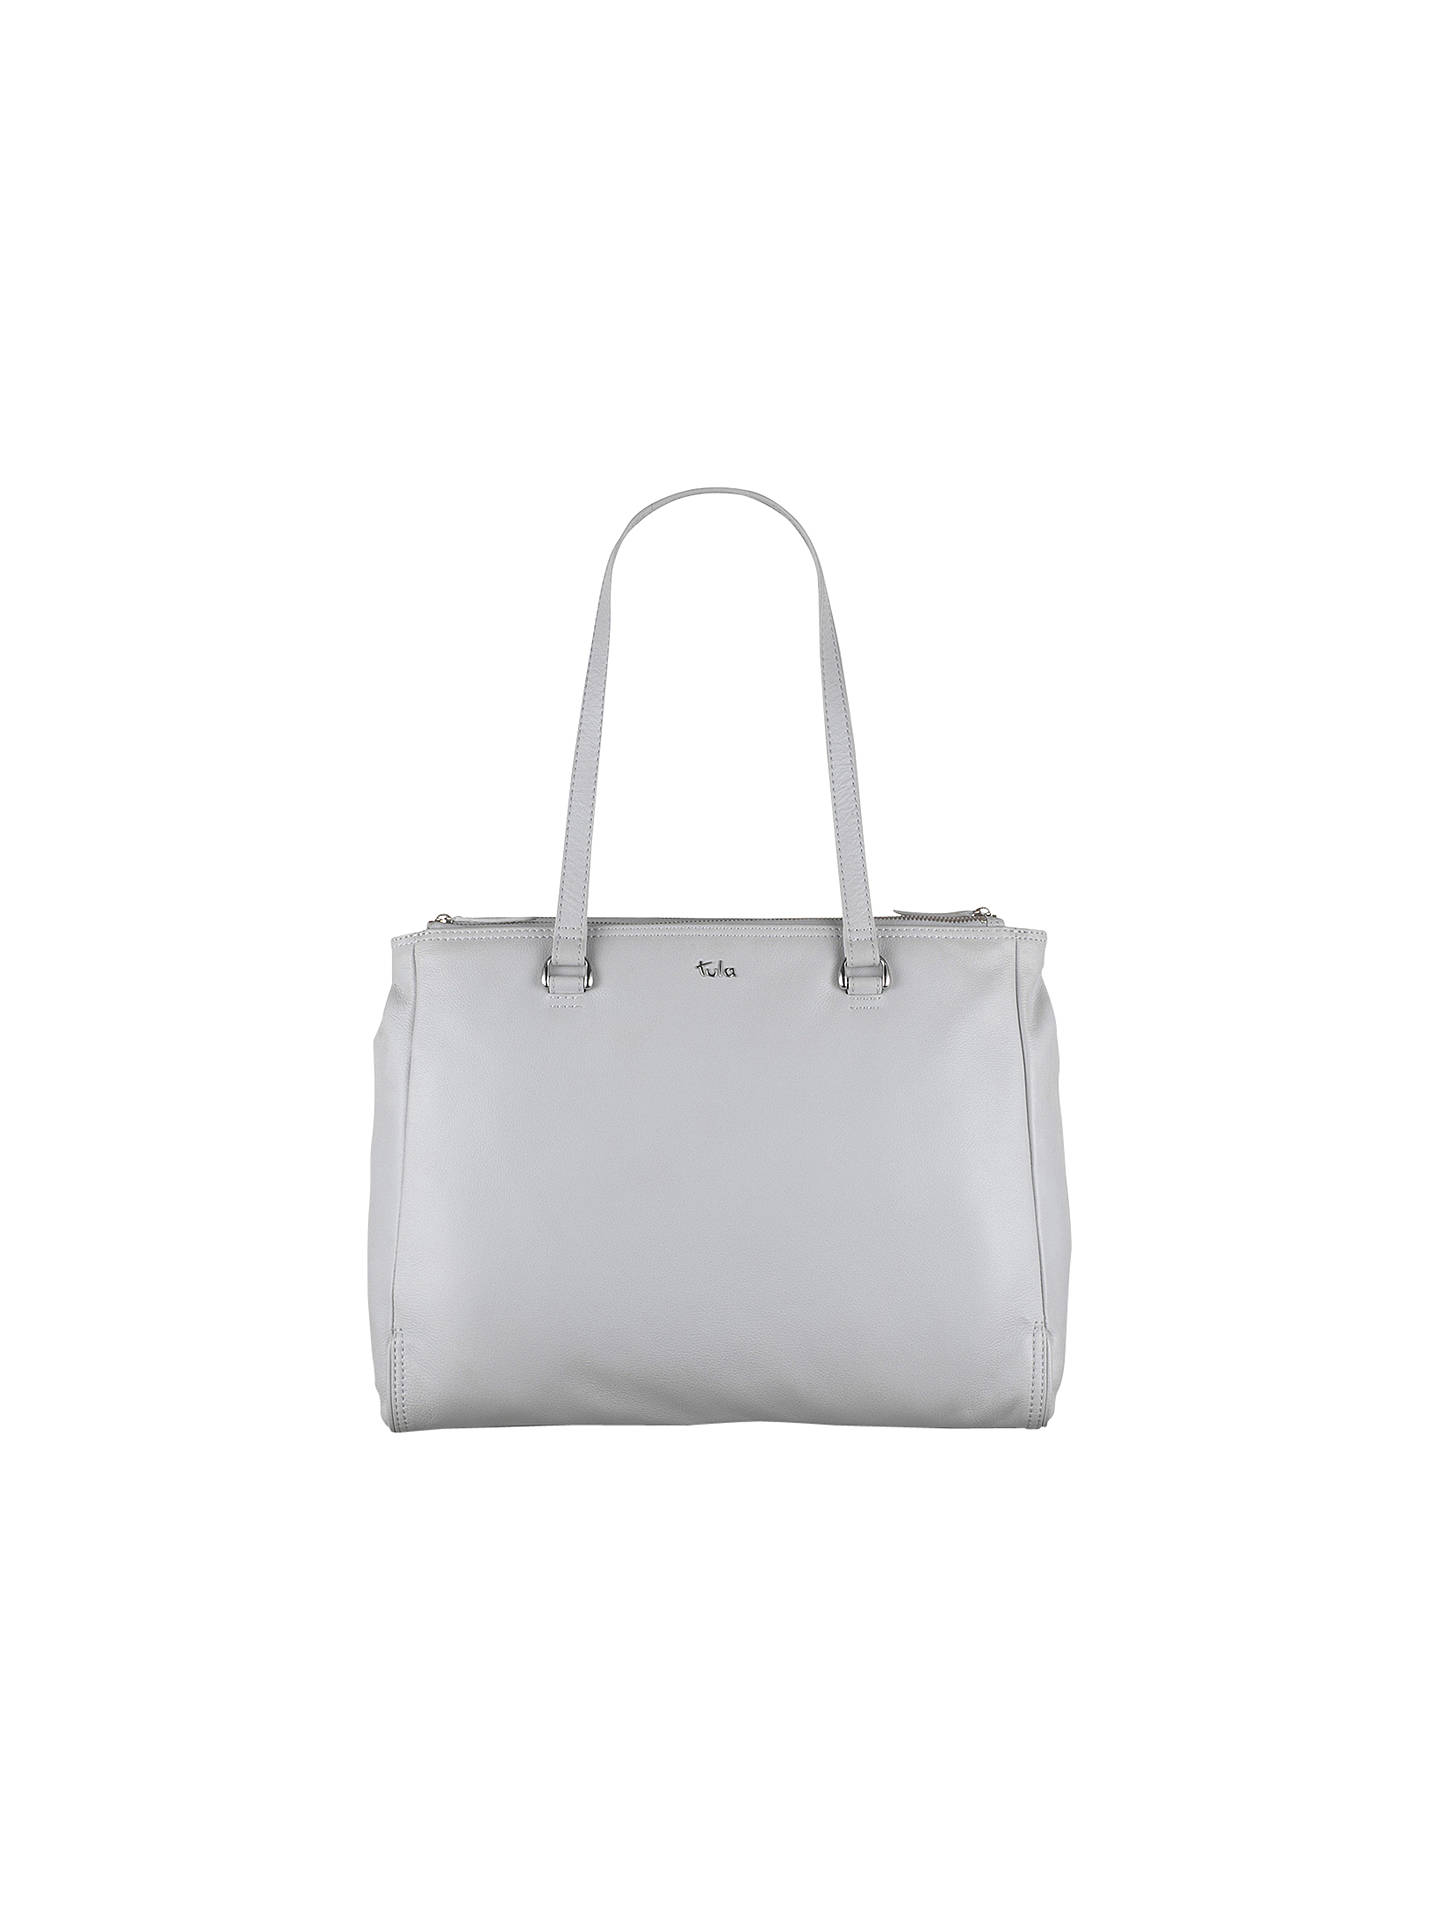 Tula Na Originals Large Leather Zip Top Bag Grey Online At Johnlewis